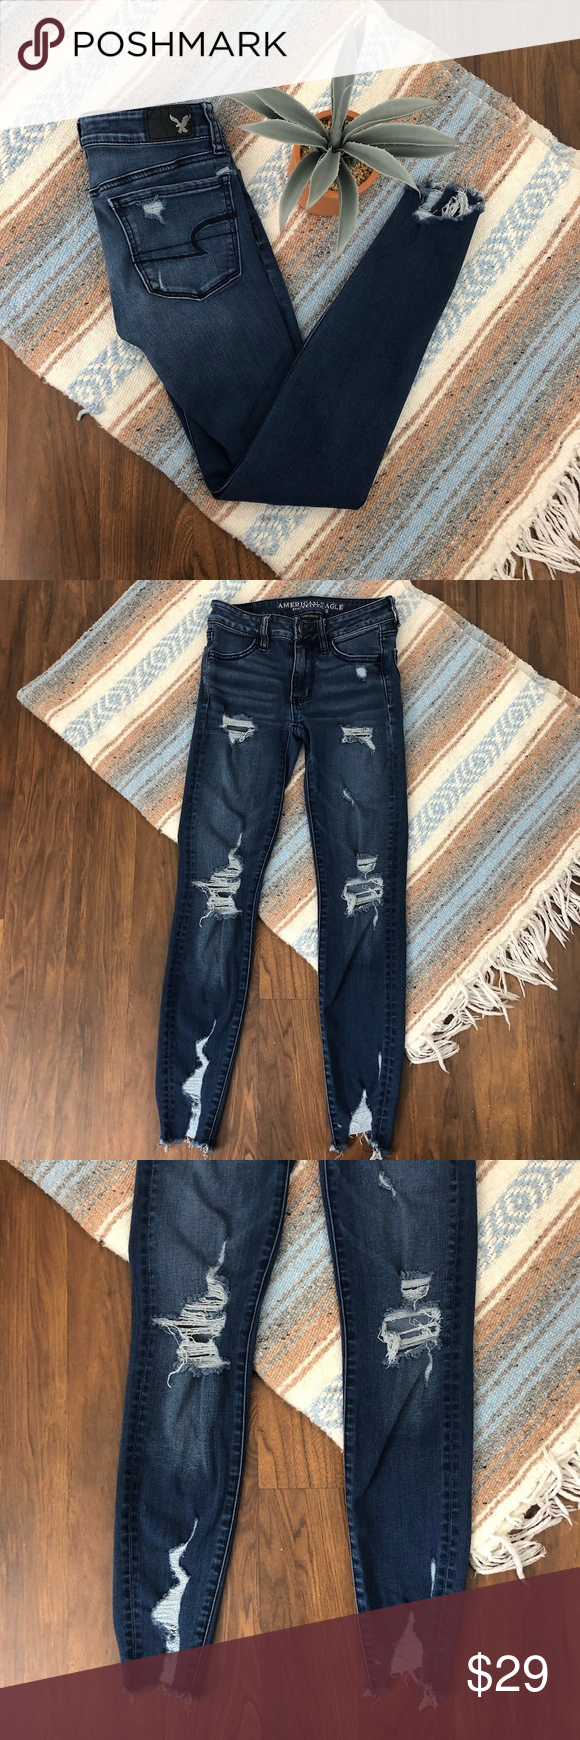 Believe Or Not: American Eagle Jeggings Review in sz 00